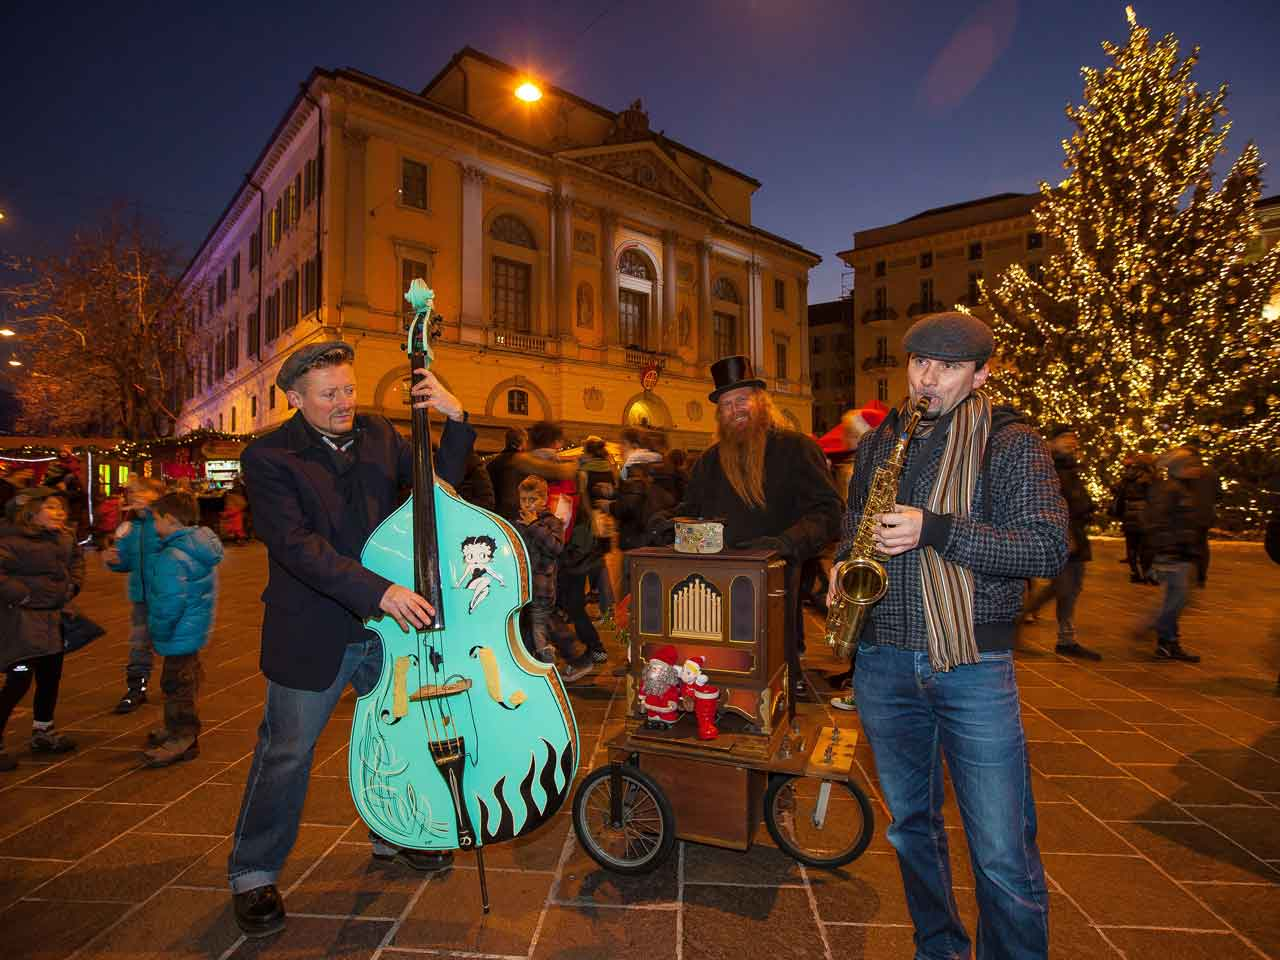 Natale in Piazza – Lugano in Feststimmung